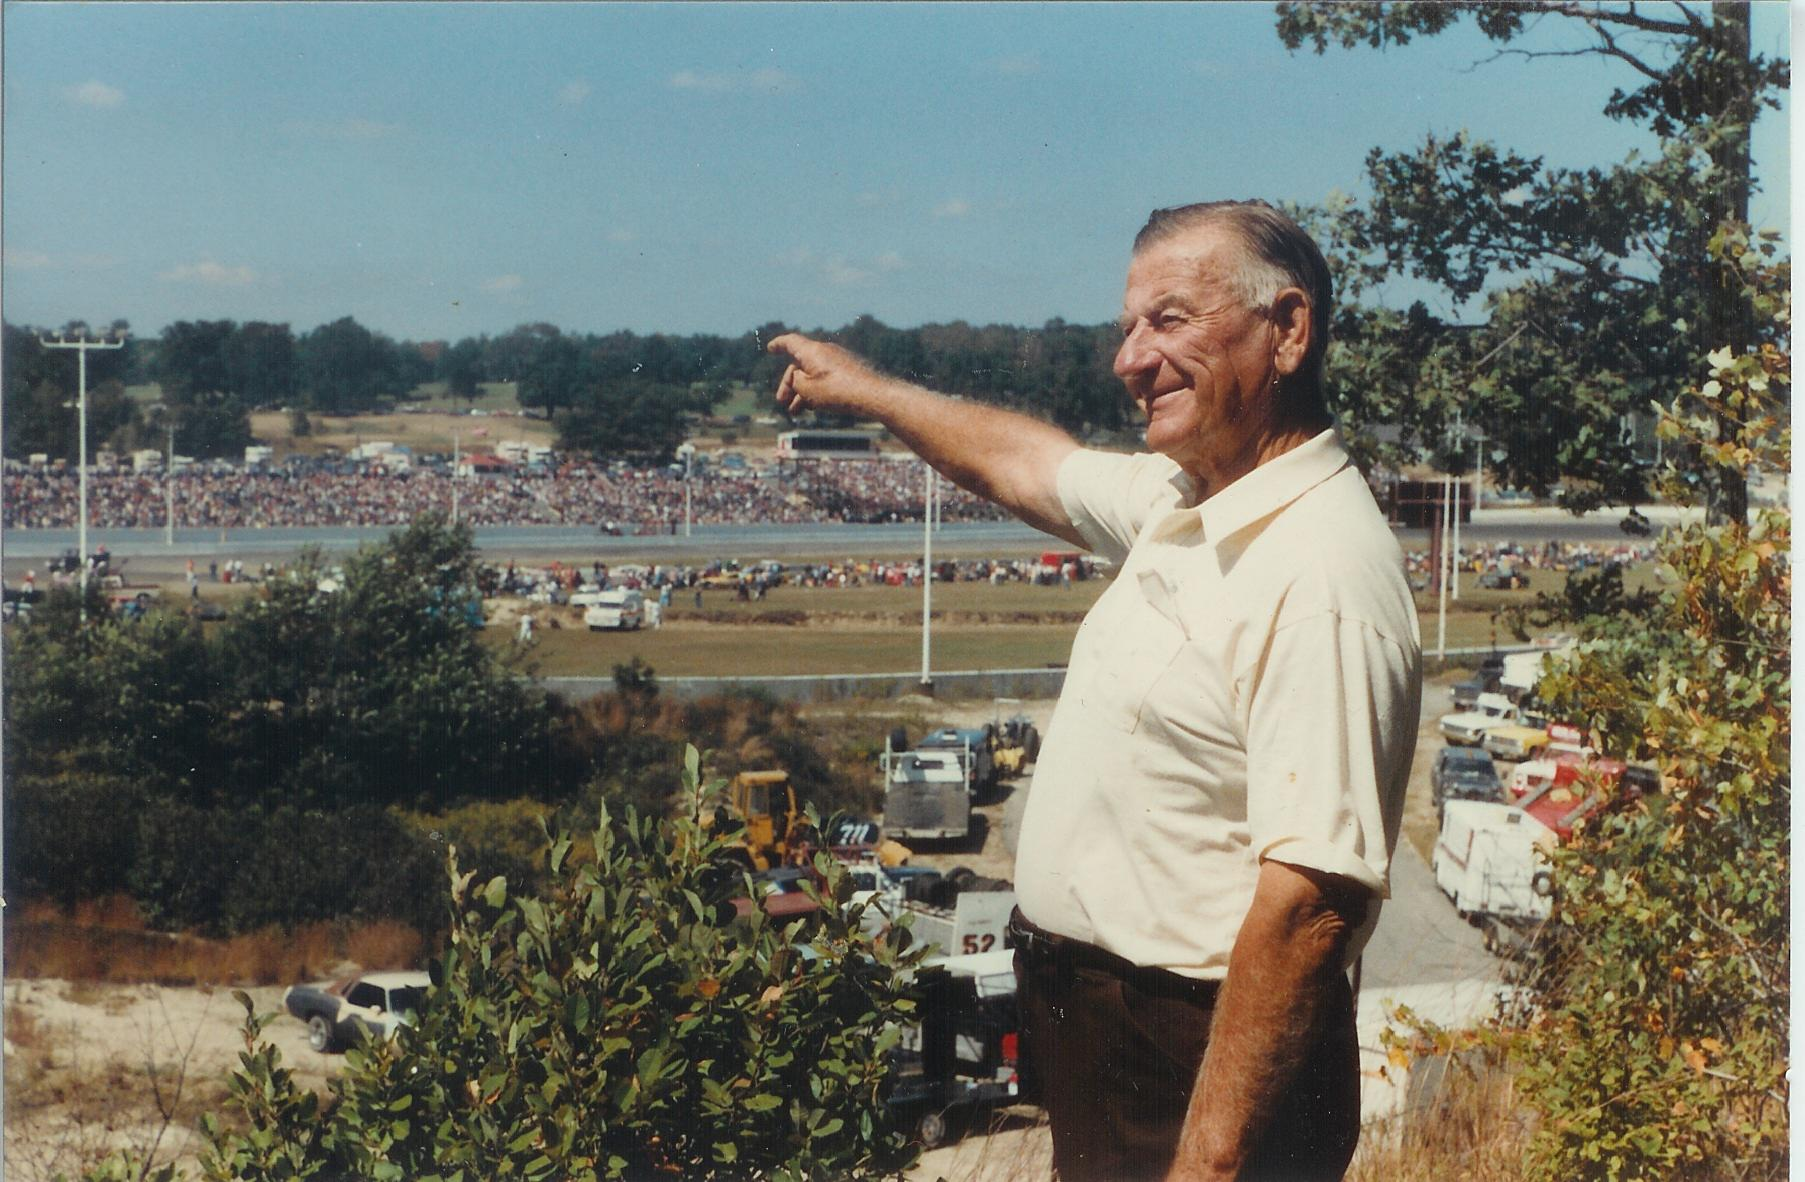 John Hoenig and the Thompson Speedway